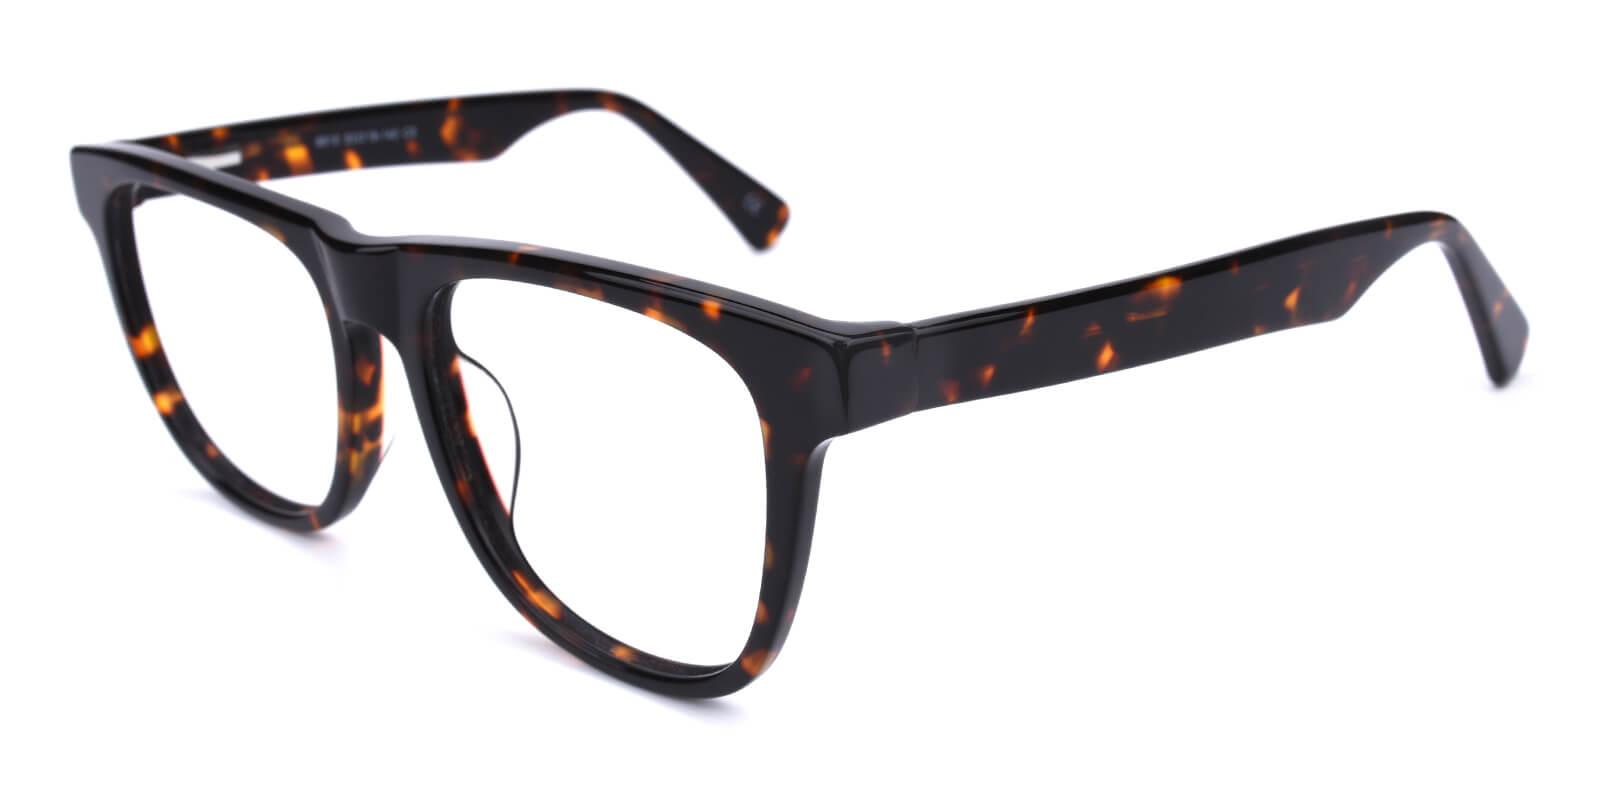 Masque-Tortoise-Square-Acetate-Eyeglasses-additional1